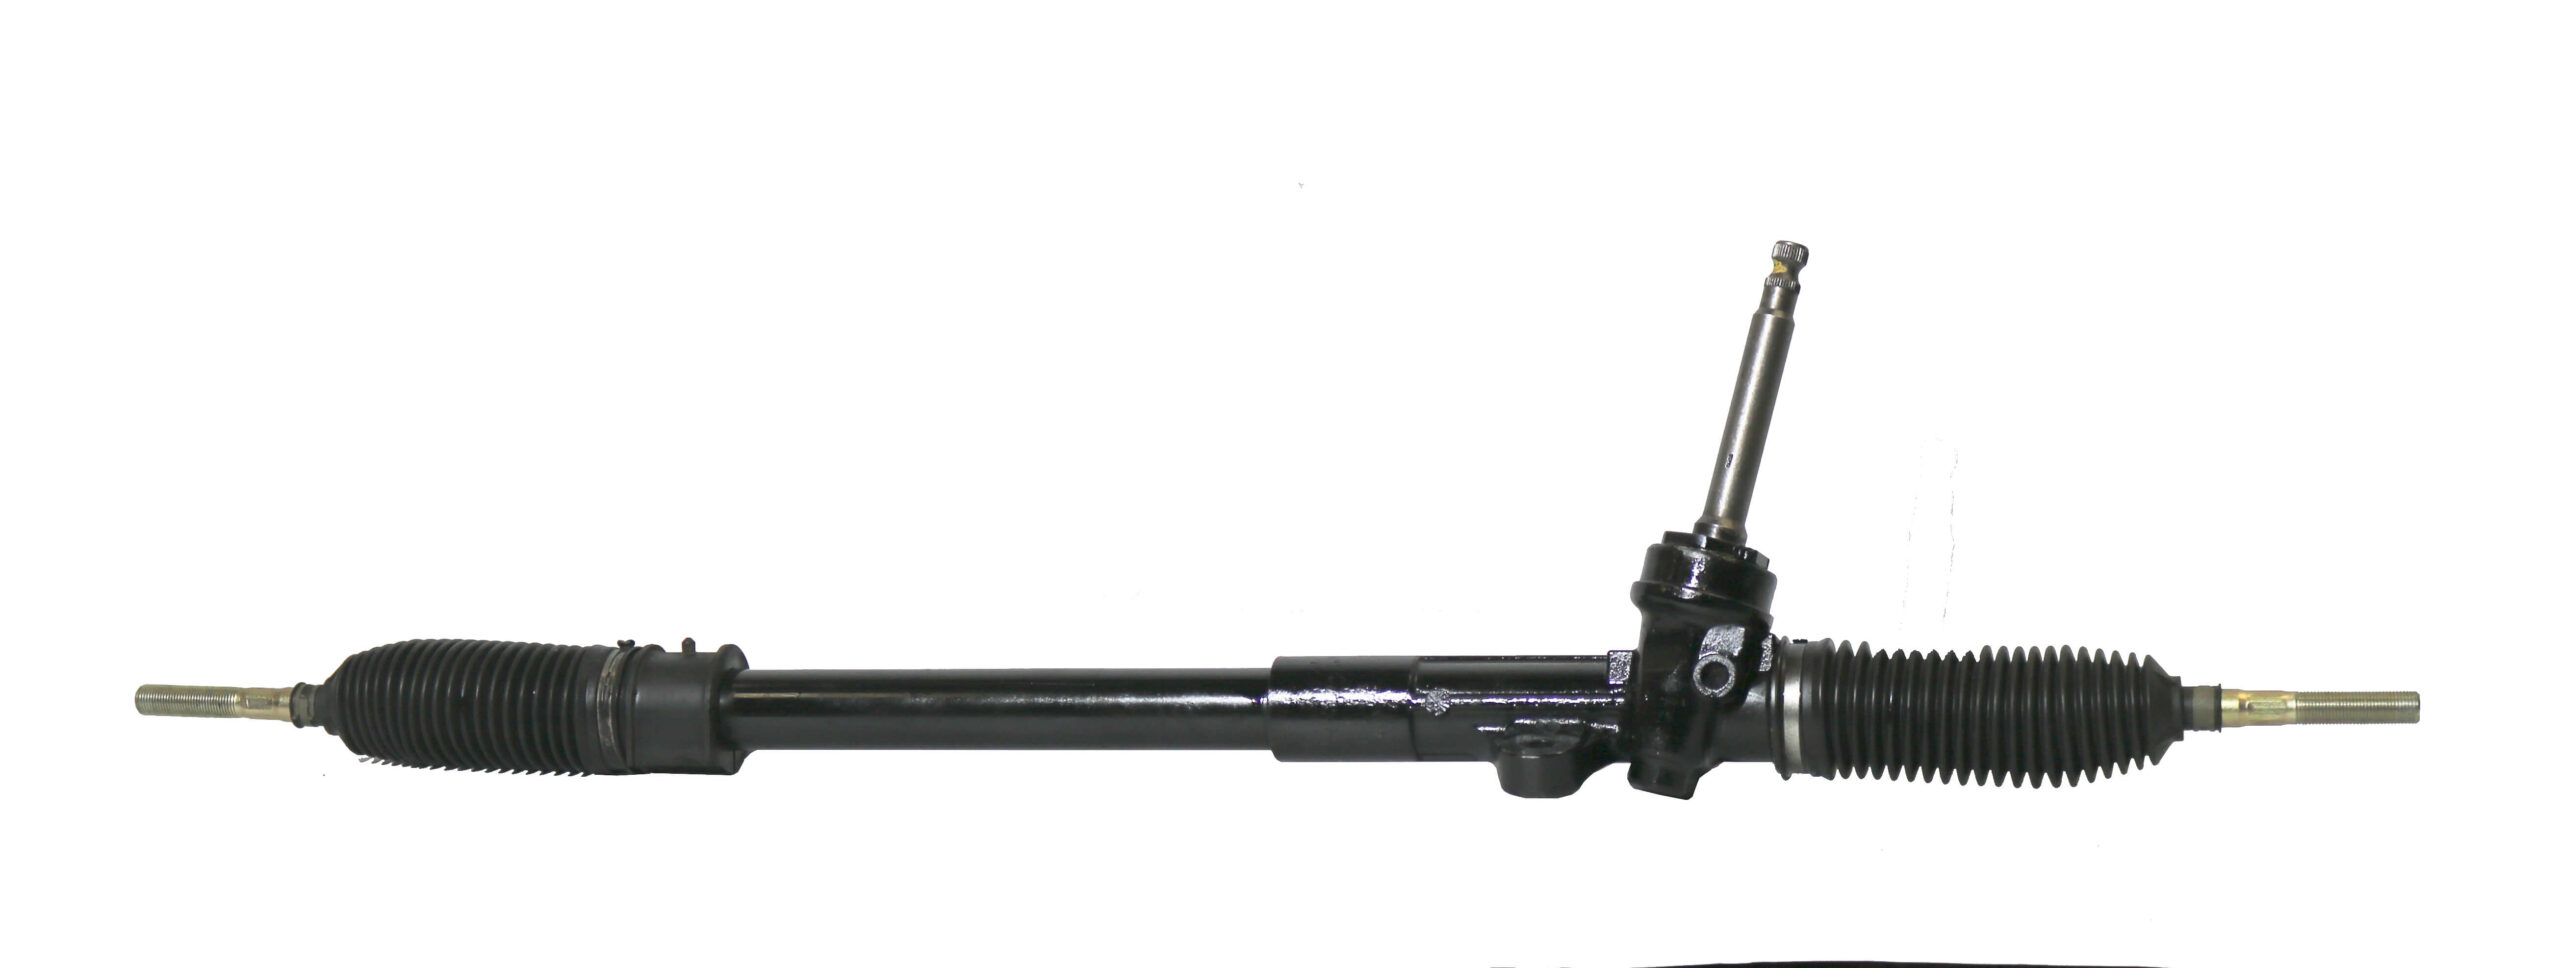 products phoenix rack and axle